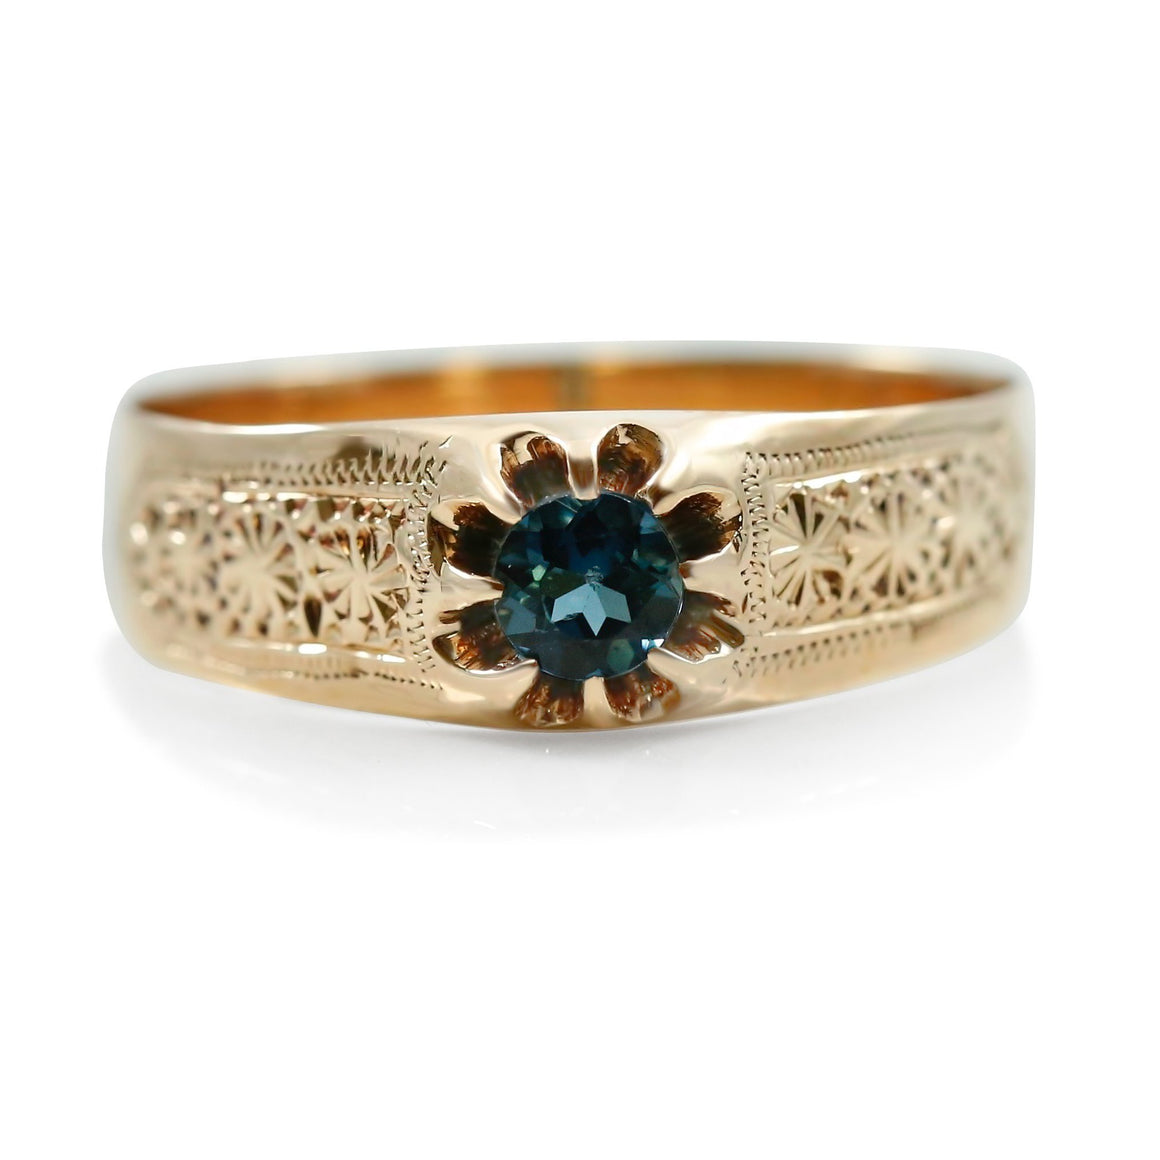 VICTORIAN ESTATE RING WITH A BLUE TOURMALINE CENTER STONE AND ROSE GOLD BAND